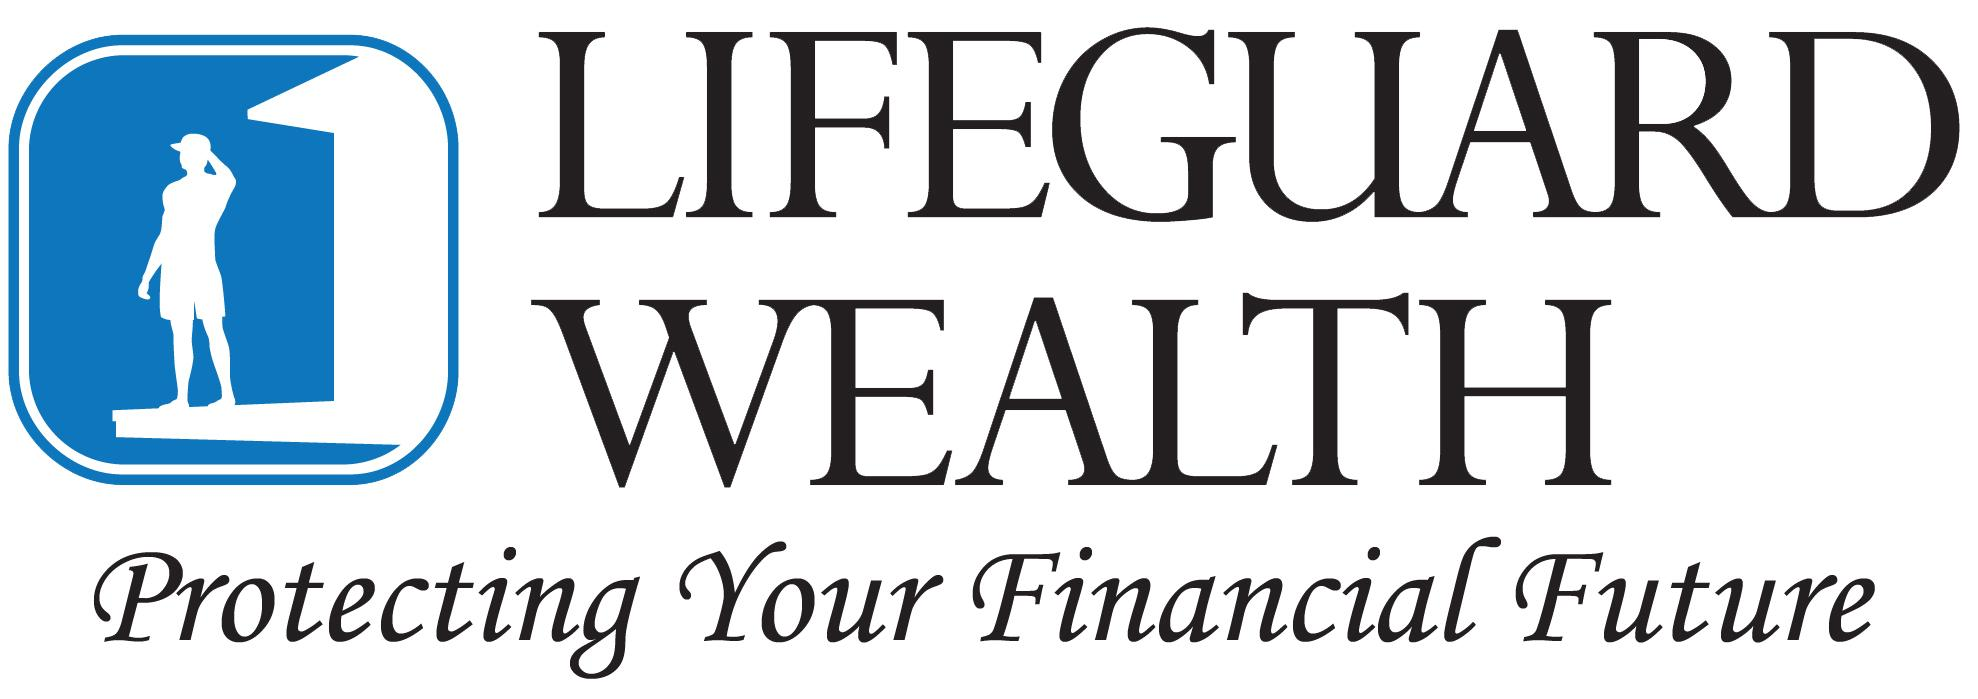 Lifeguard Wealth | Protecting Your Financial Future | San Rafael, CA